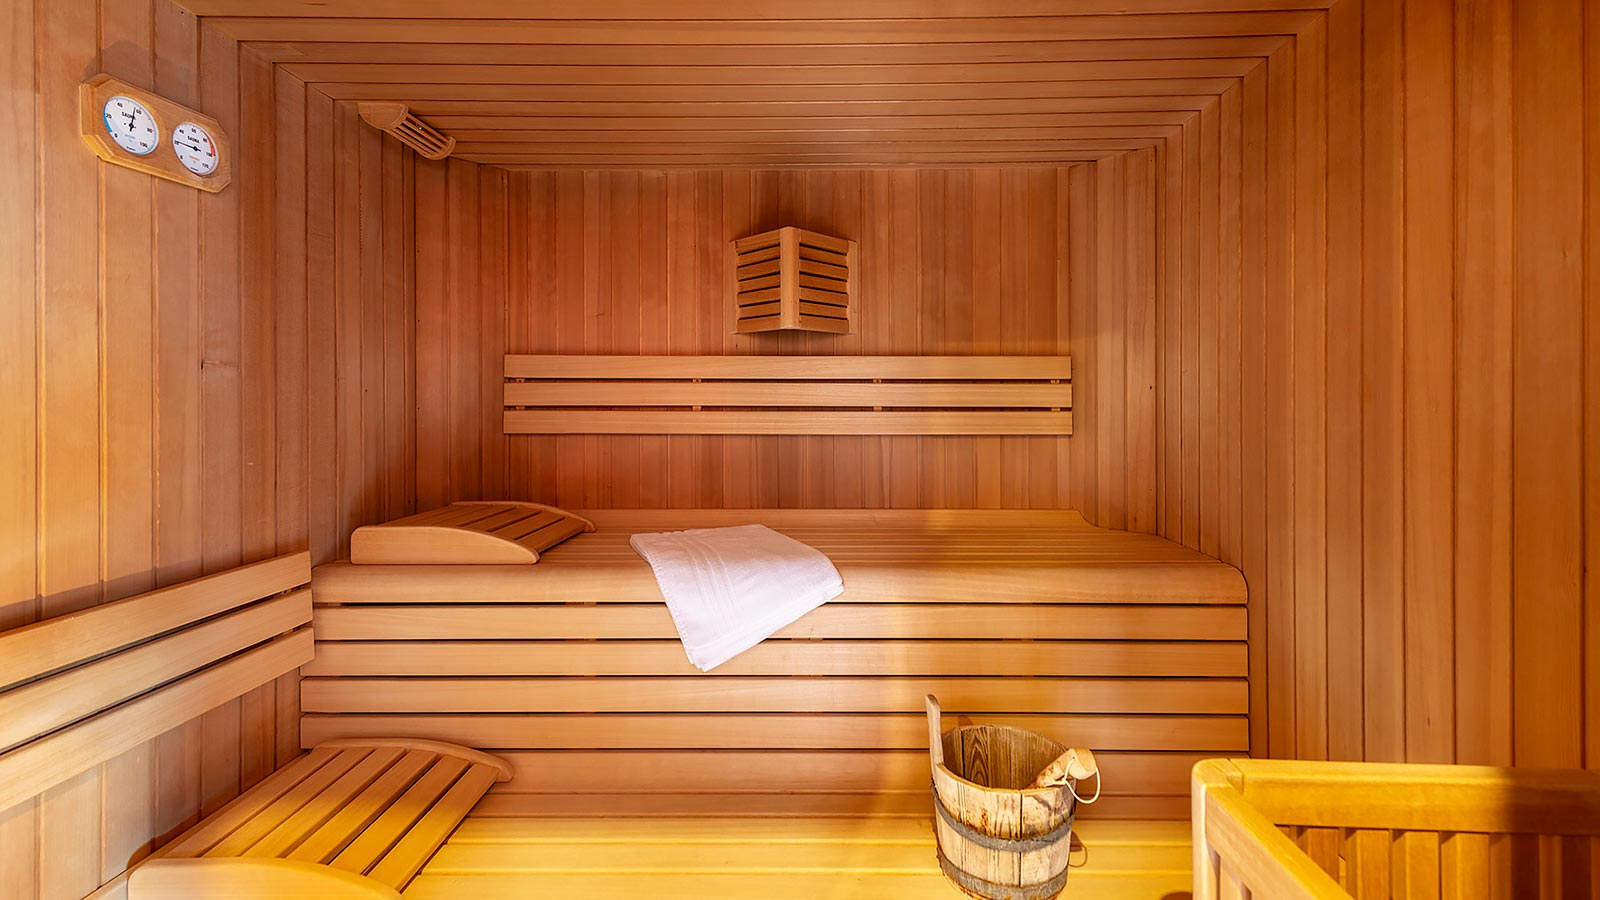 Detail of the Finnish sauna at the wellness area in Andalo